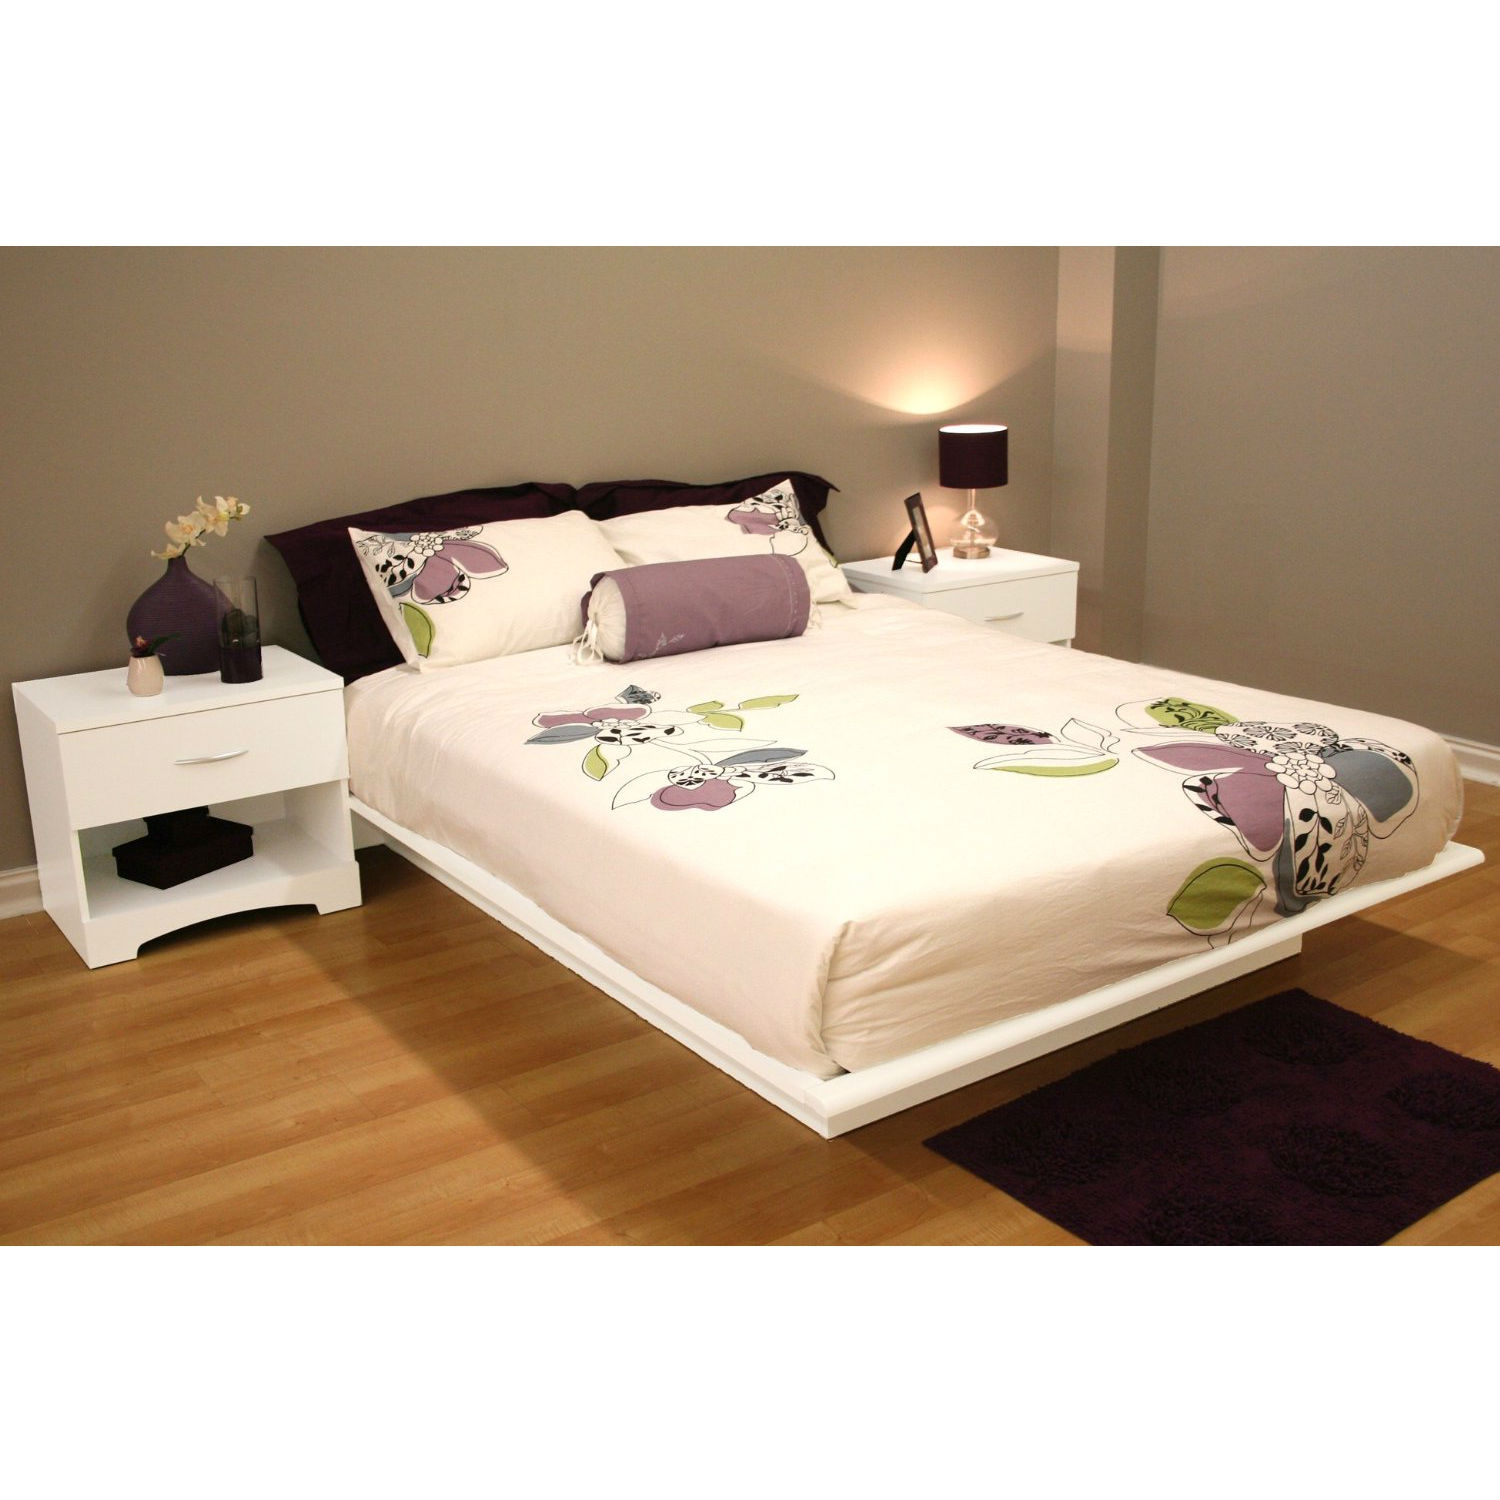 Queen size Contemporary Platform Bed Frame in White Finish, SQPBW18390 :  This Queen size Contemporary Platform Bed Frame in White Finish would be a great addition to your home. It has sleek line for a contemporary style and a white finish. Sleek lines for a contemporary style; The moldings of the platform bed have profiled edges that help the mattress to stay in place; Manufactured from eco-friendly, EPP-compliant laminated particle board carrying the Forest Stewardship Council (FSC) certification; Headboard not included; 5-year manufacturer's limited warranty; Assembly Required: Yes; Product Warranty: 5 year limited warranty. CPSIA or CPSC Compliant: Yes; CARB Compliant: Yes; Finish: Pure white; Frame Material: Particle board; ISTA 3A Certified: Yes; General Conformity Certificate: Yes. Non Toxic: Yes; Country of Manufacture: Canada; Eco-Friendly: Yes; Weight Capacity: 500lbs. Product Care: Wipe clean with dry cloth.